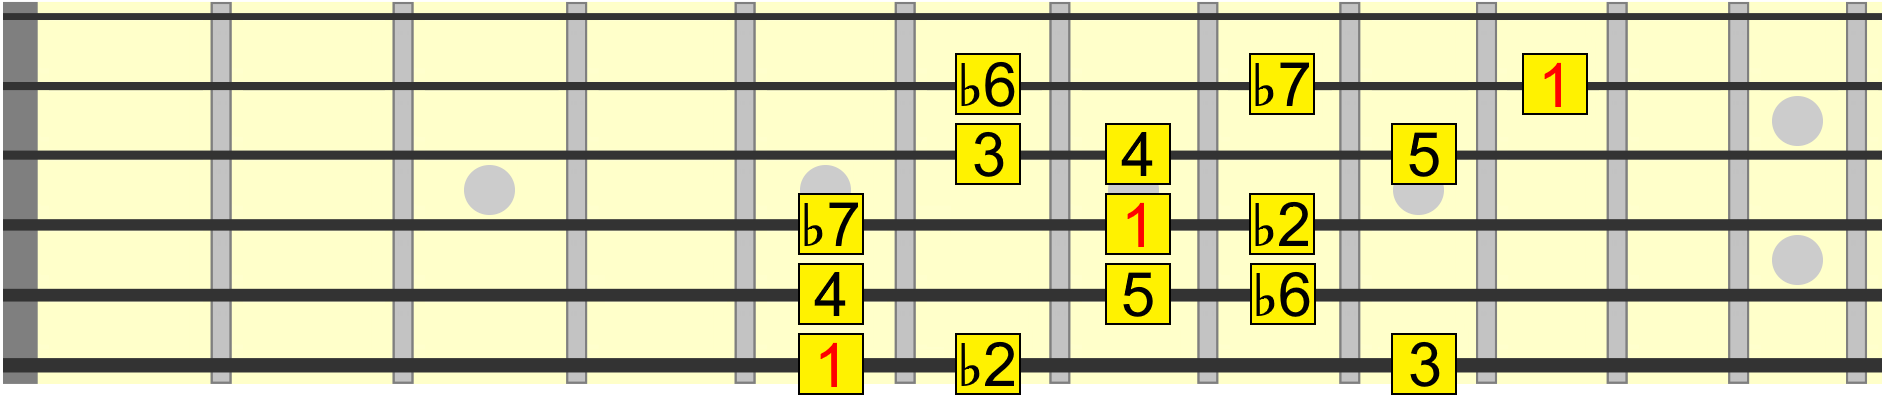 phrygian dominant scale intervals